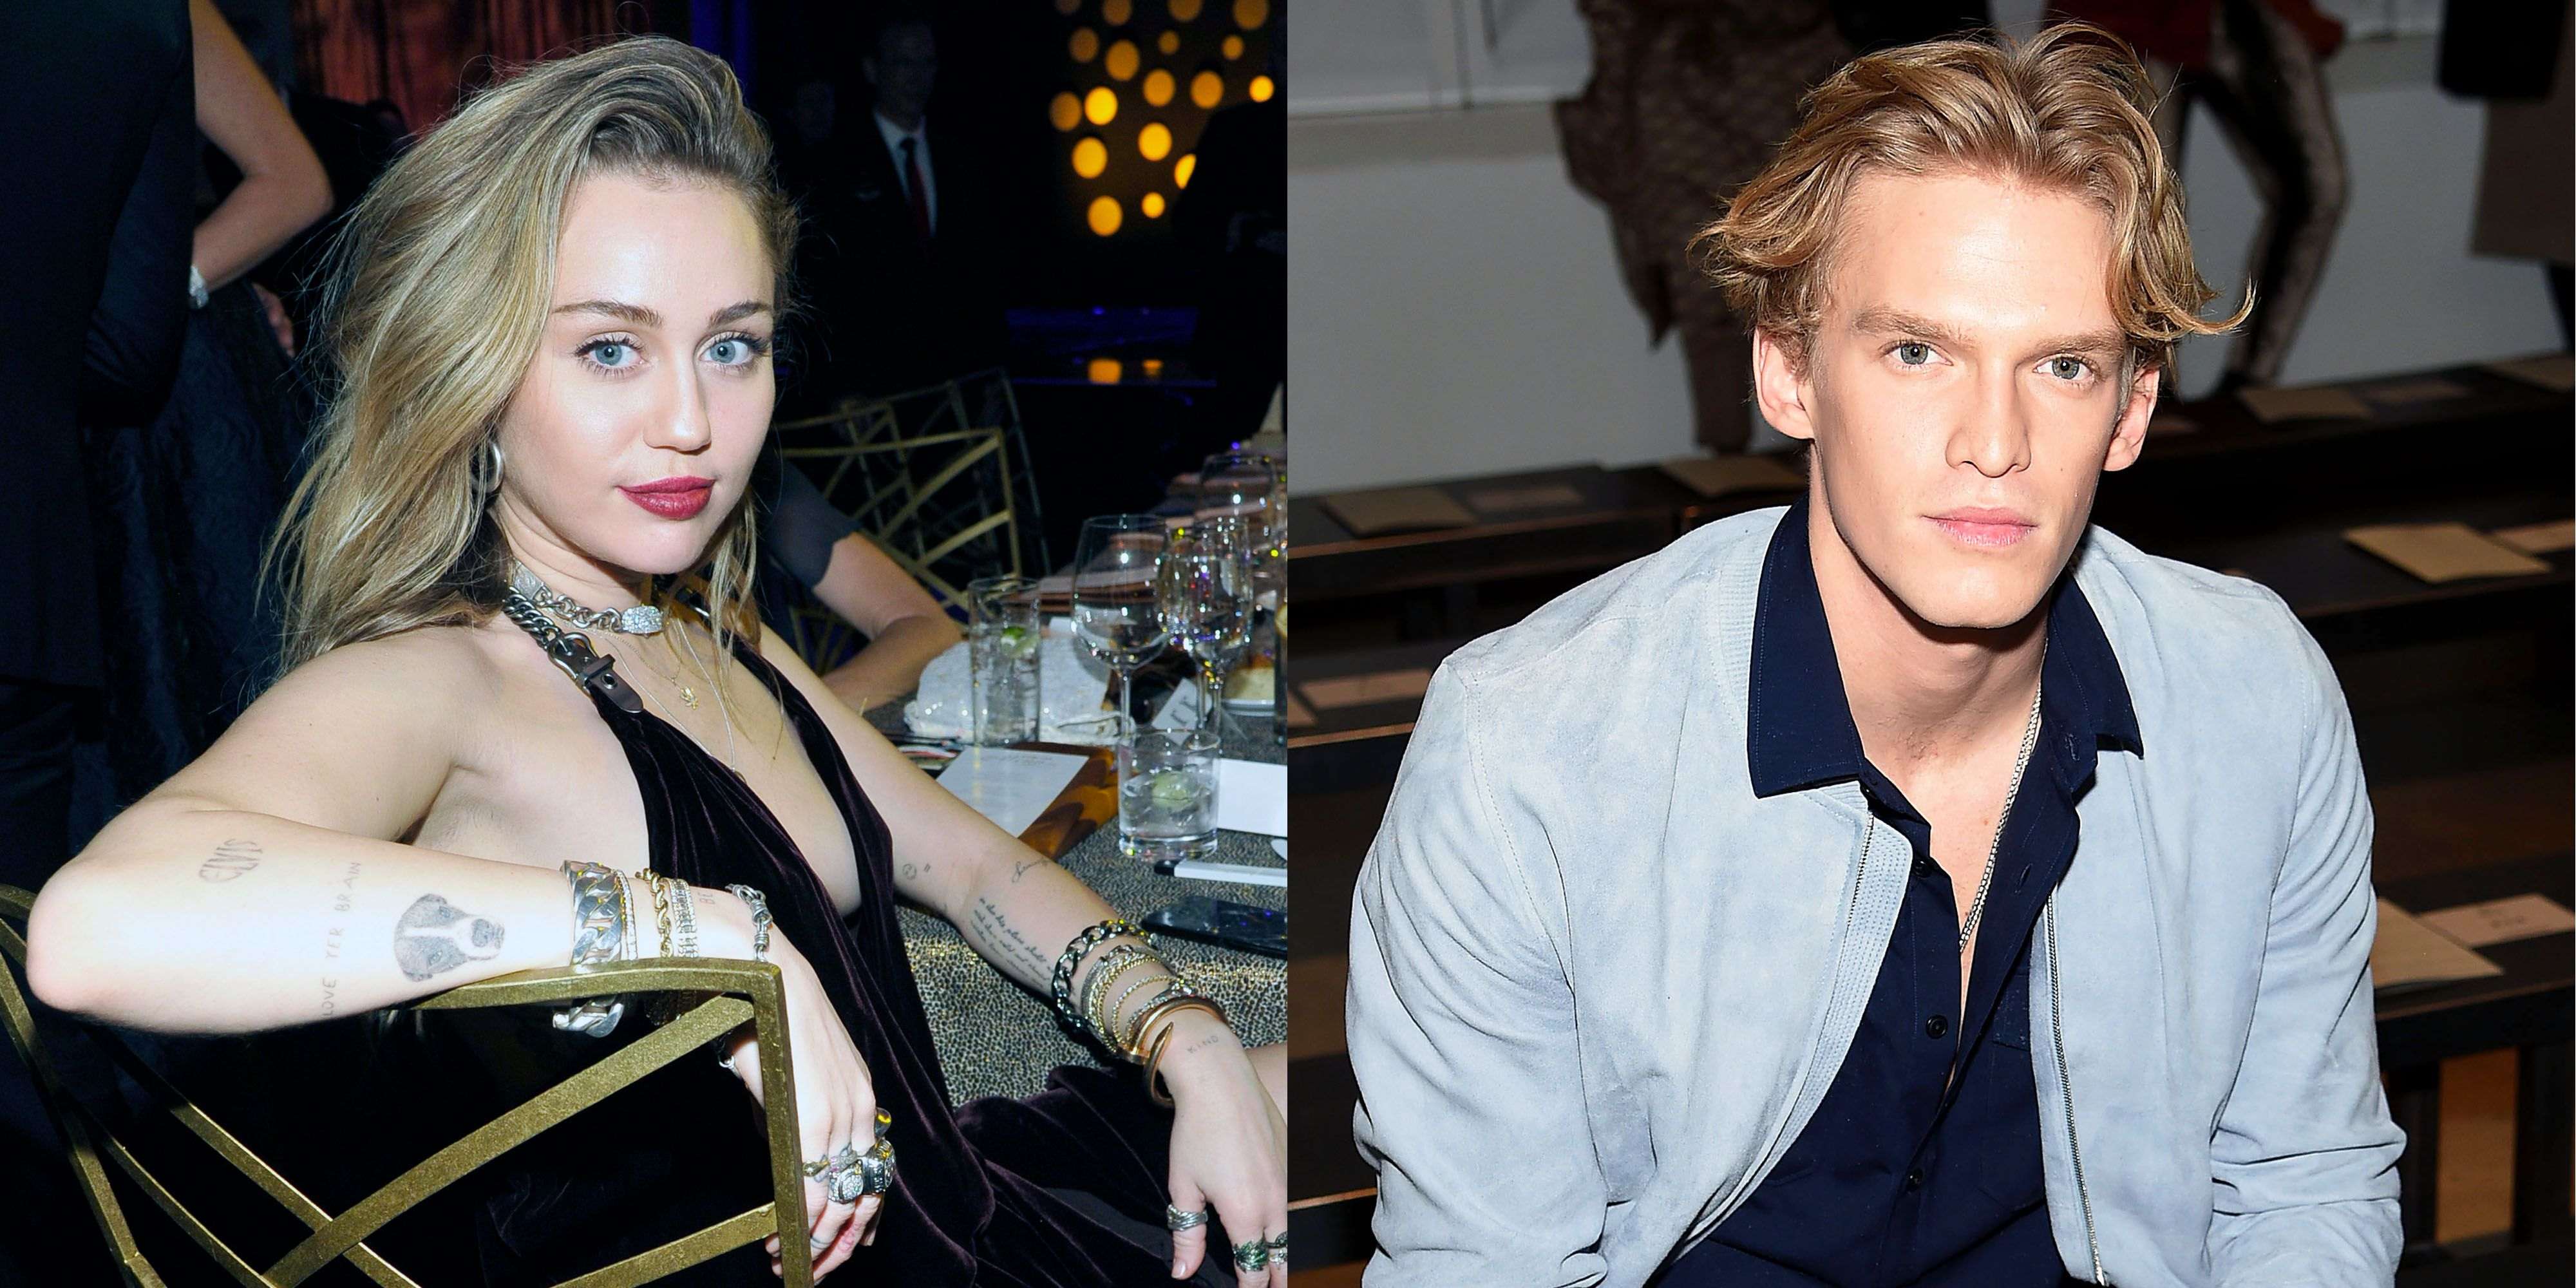 Miley Cyrus Confirms That She and Cody Simpson Are Exclusive on Instagram